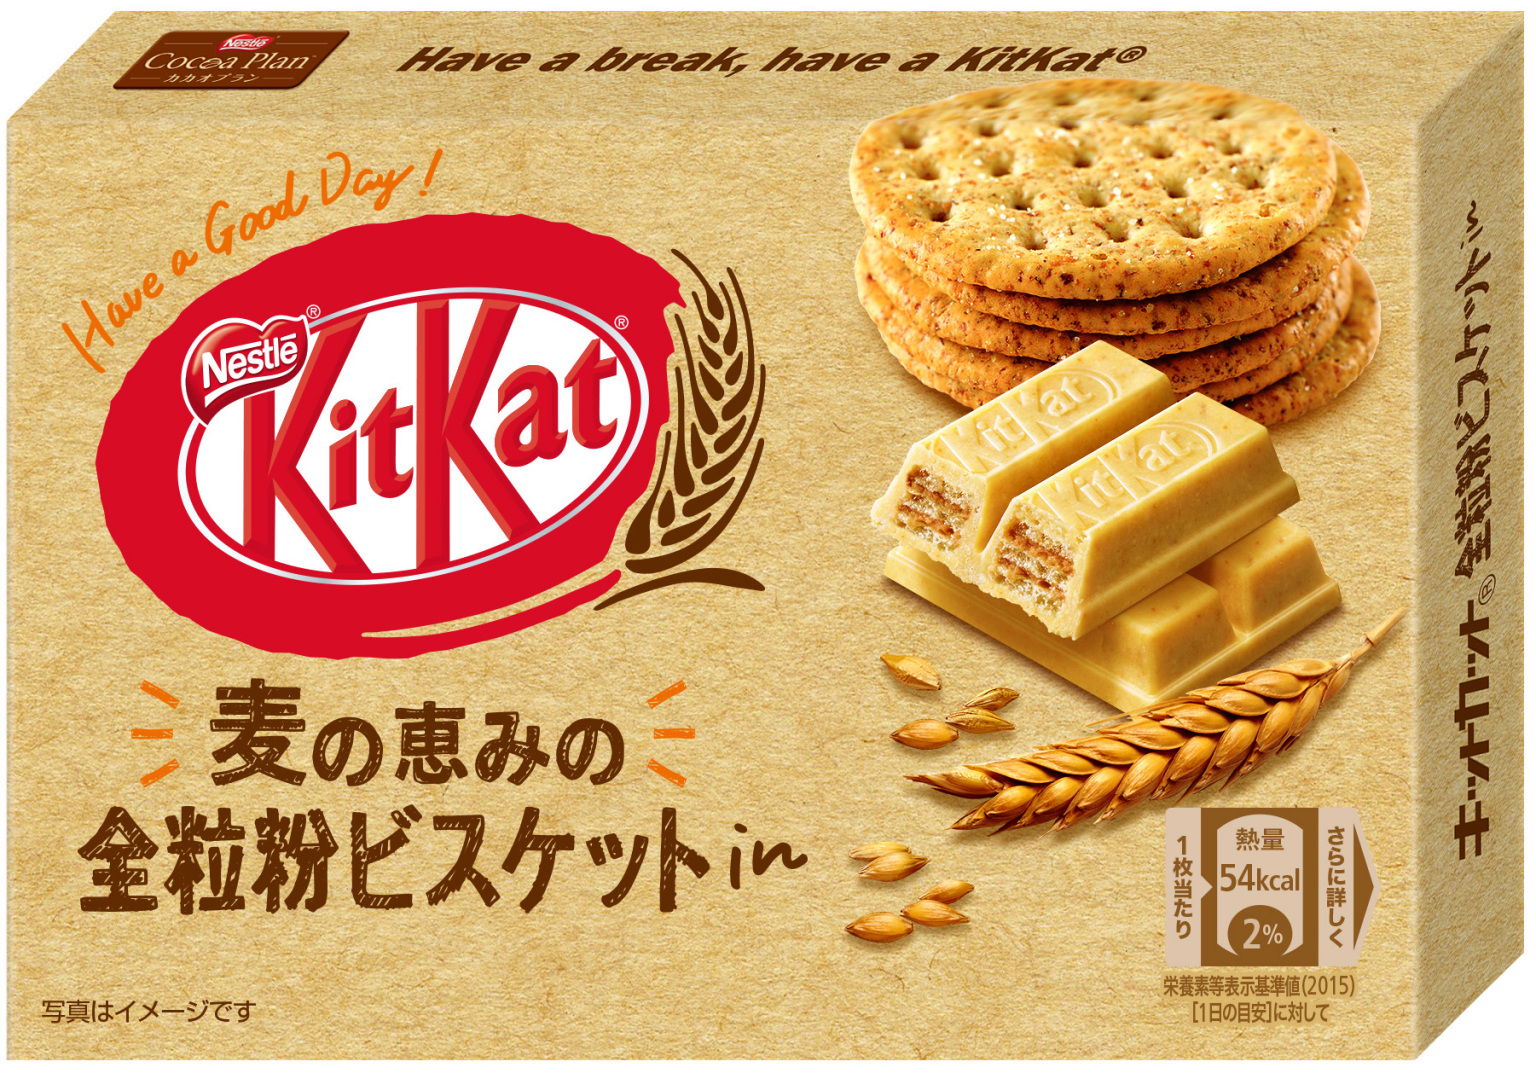 Japanese-Kit-Kat-new-wheat-biscuit-Graham-cracker-Japan-limited-edition-healthy-chocolate-4.jpg